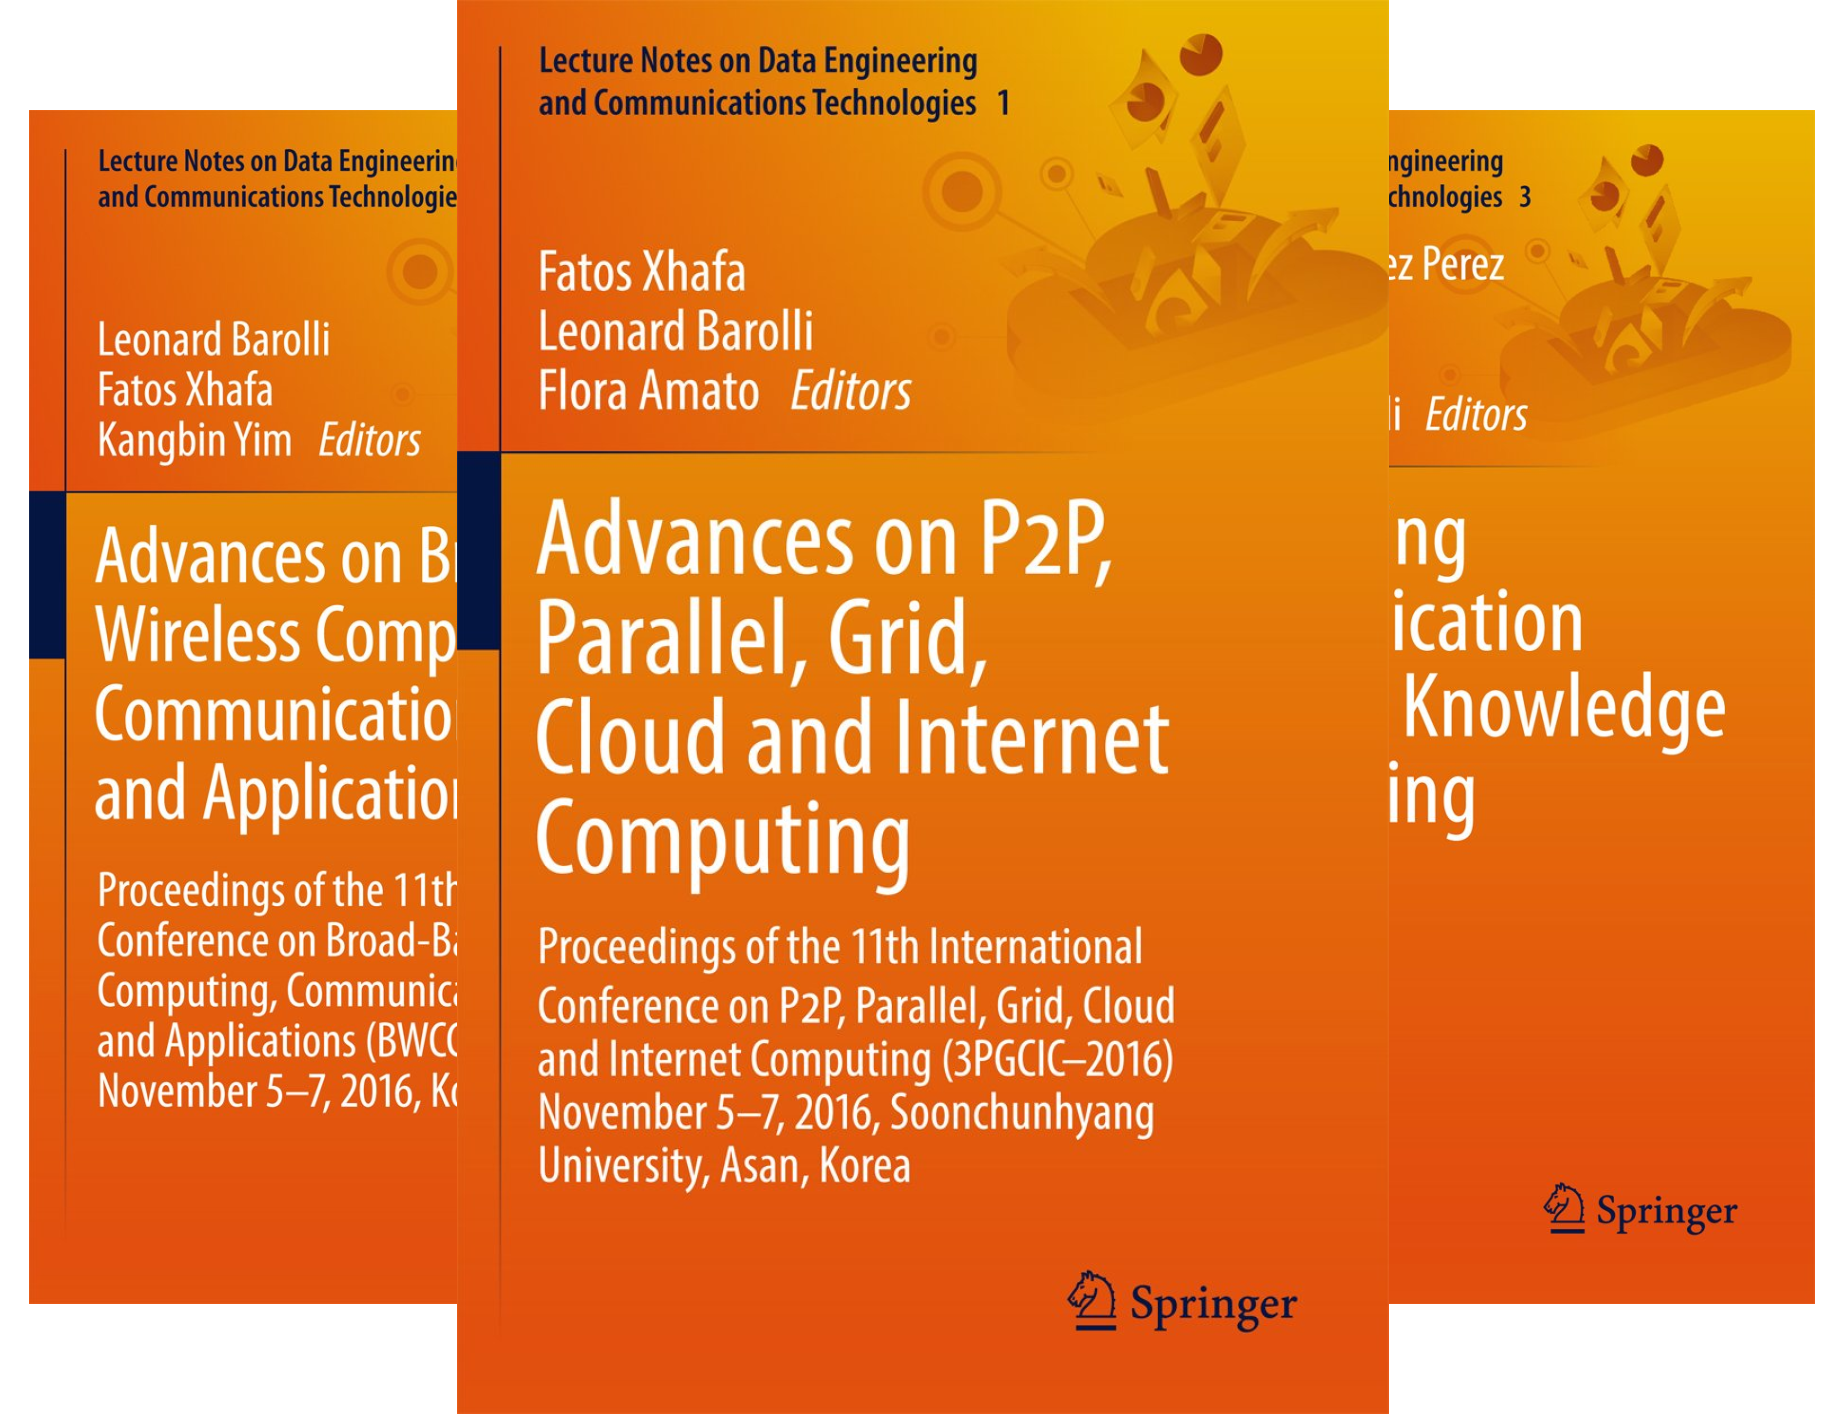 Lecture Notes on Data Engineering and Communications Technologies (50 Book Series)